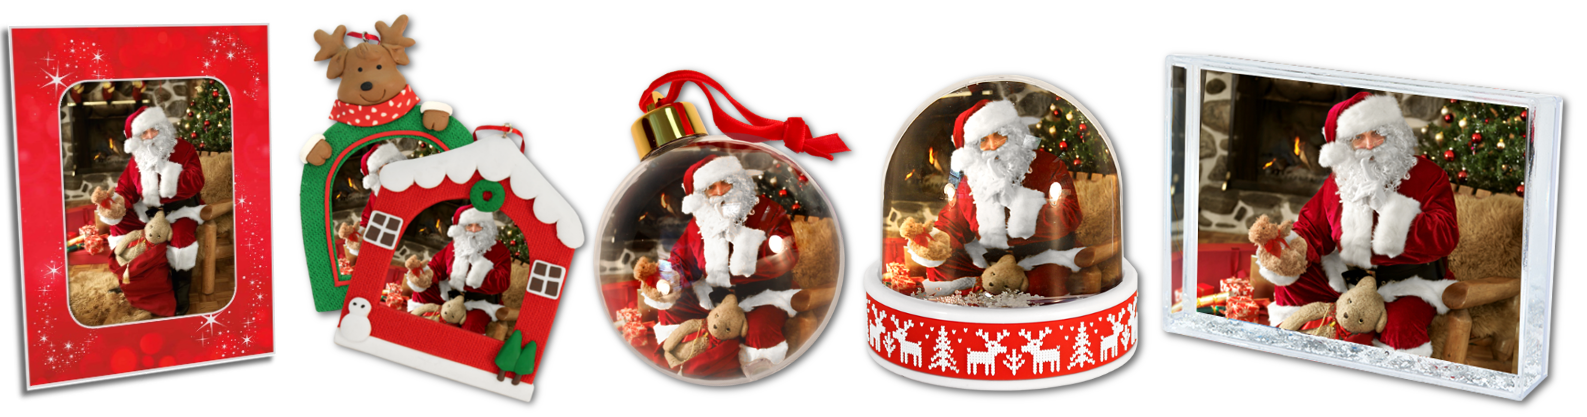 Christmas Grotto photography souvenirs